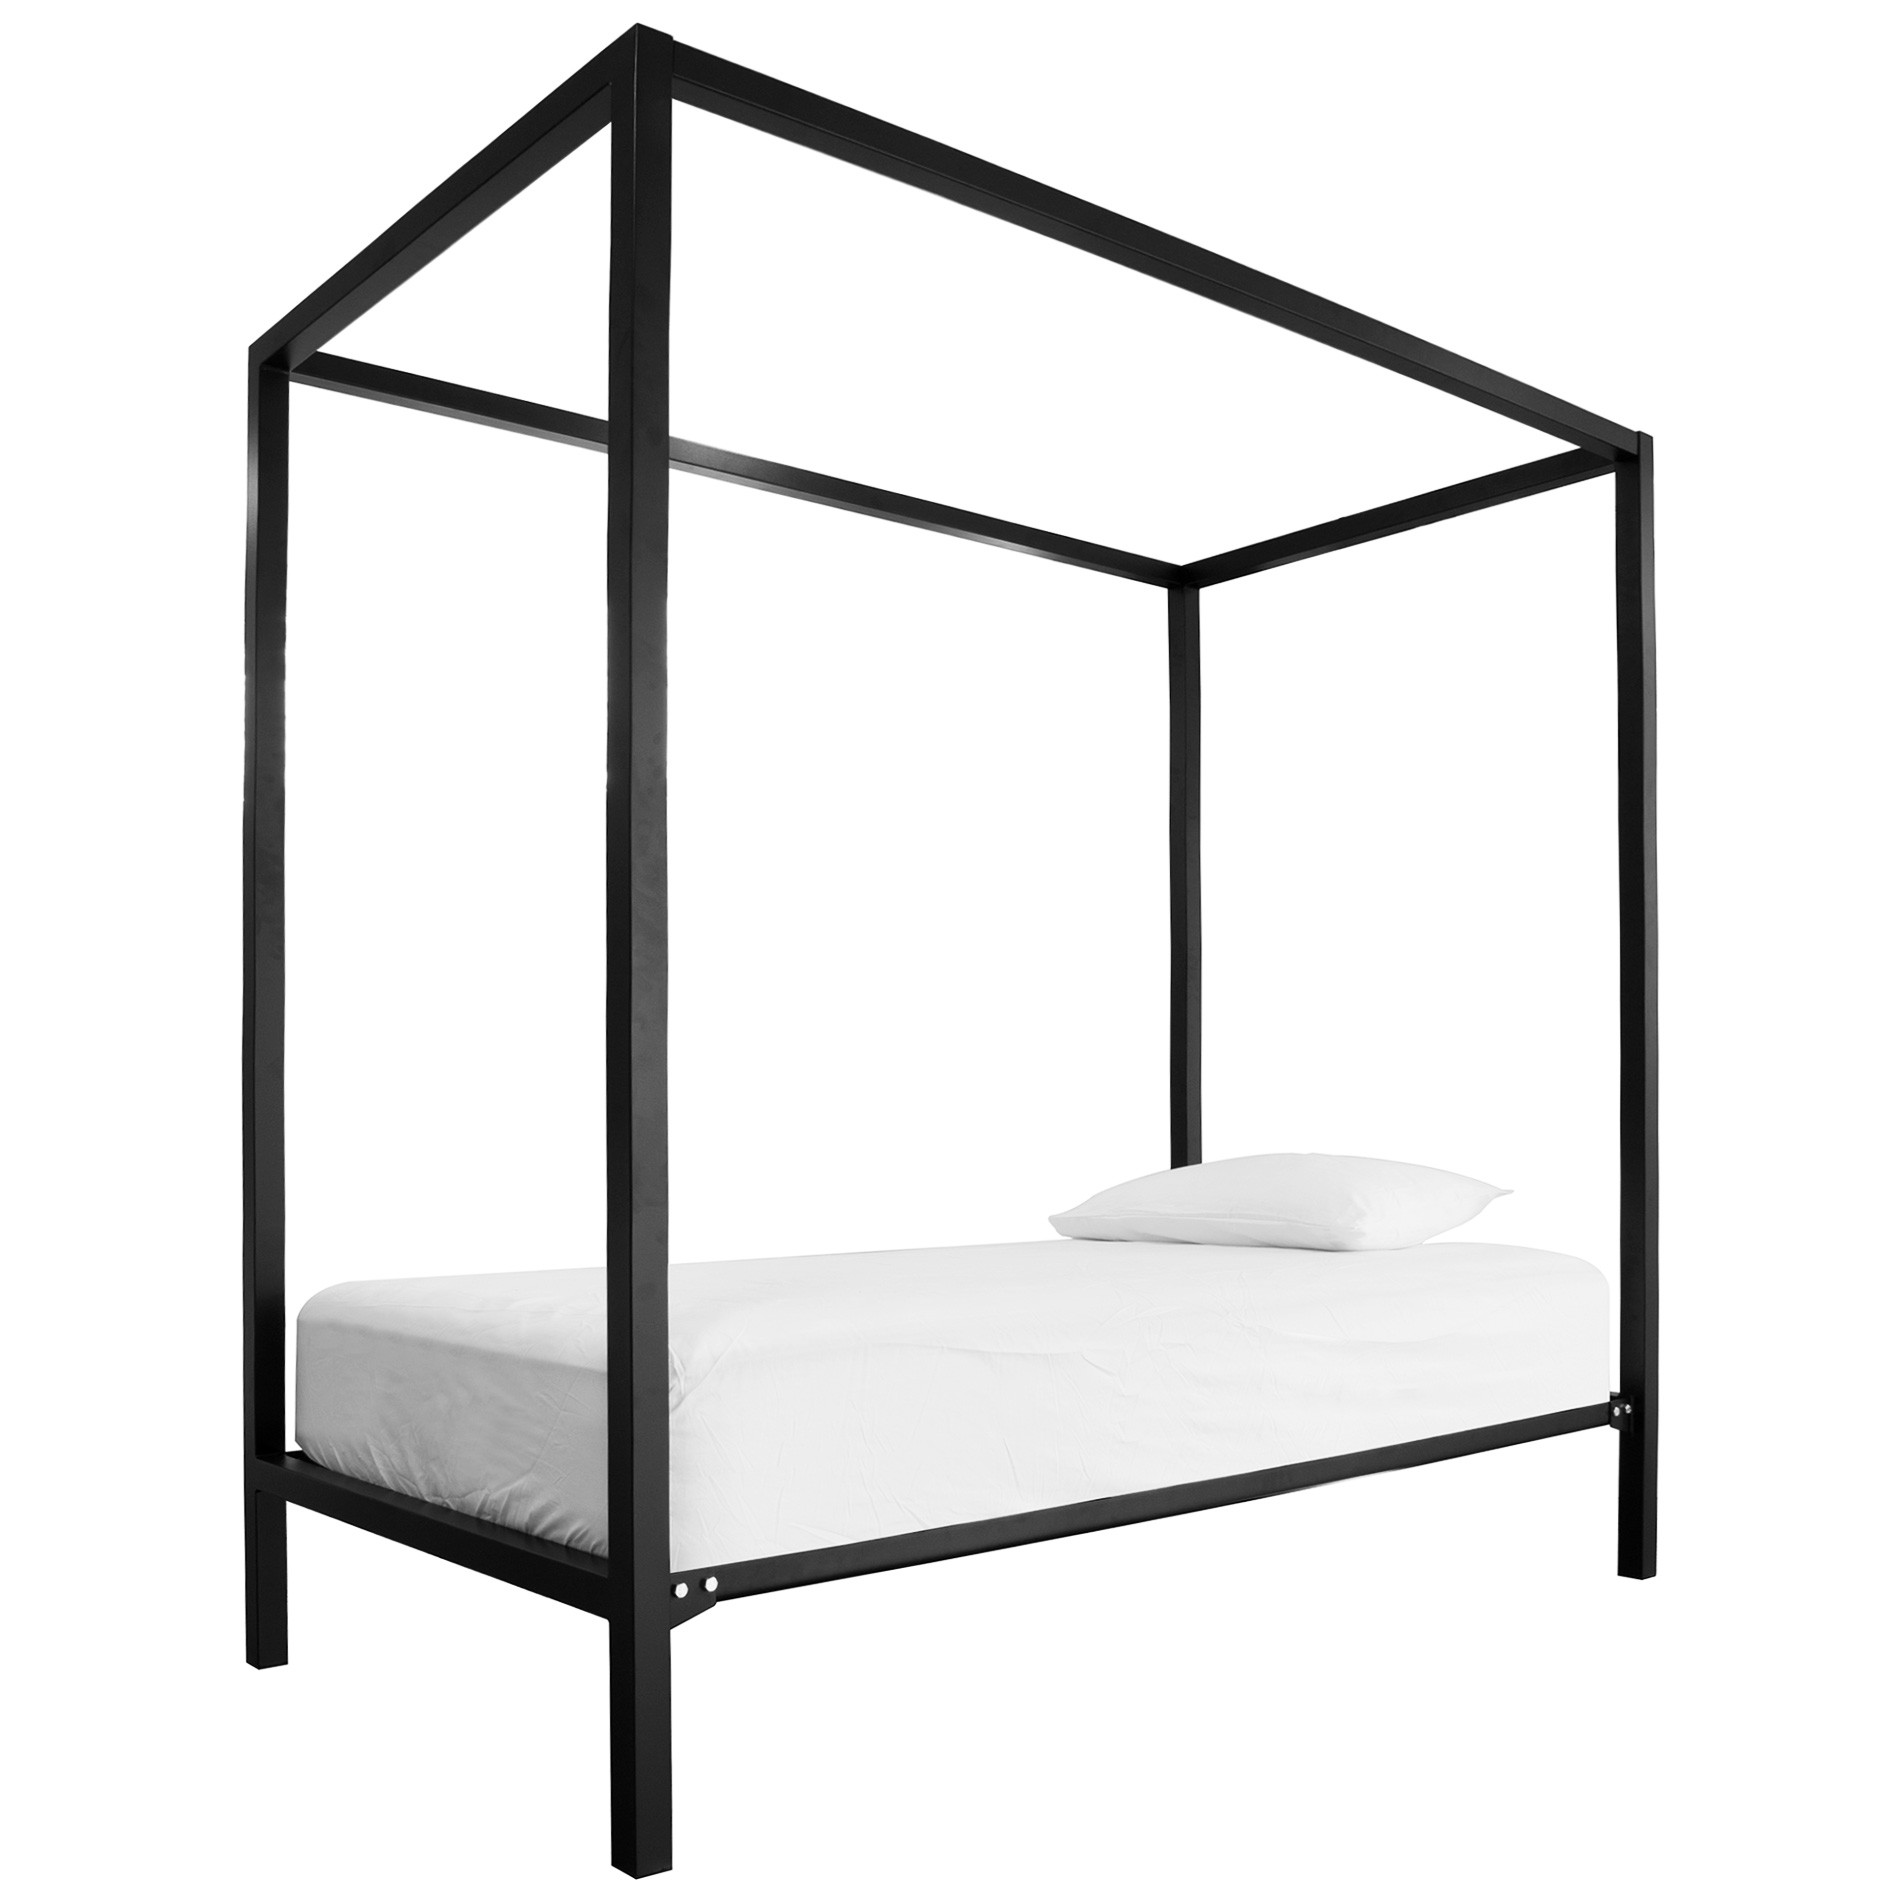 Tubeco Nusa Australian Made Metal Bed, King Single, Gloss Black